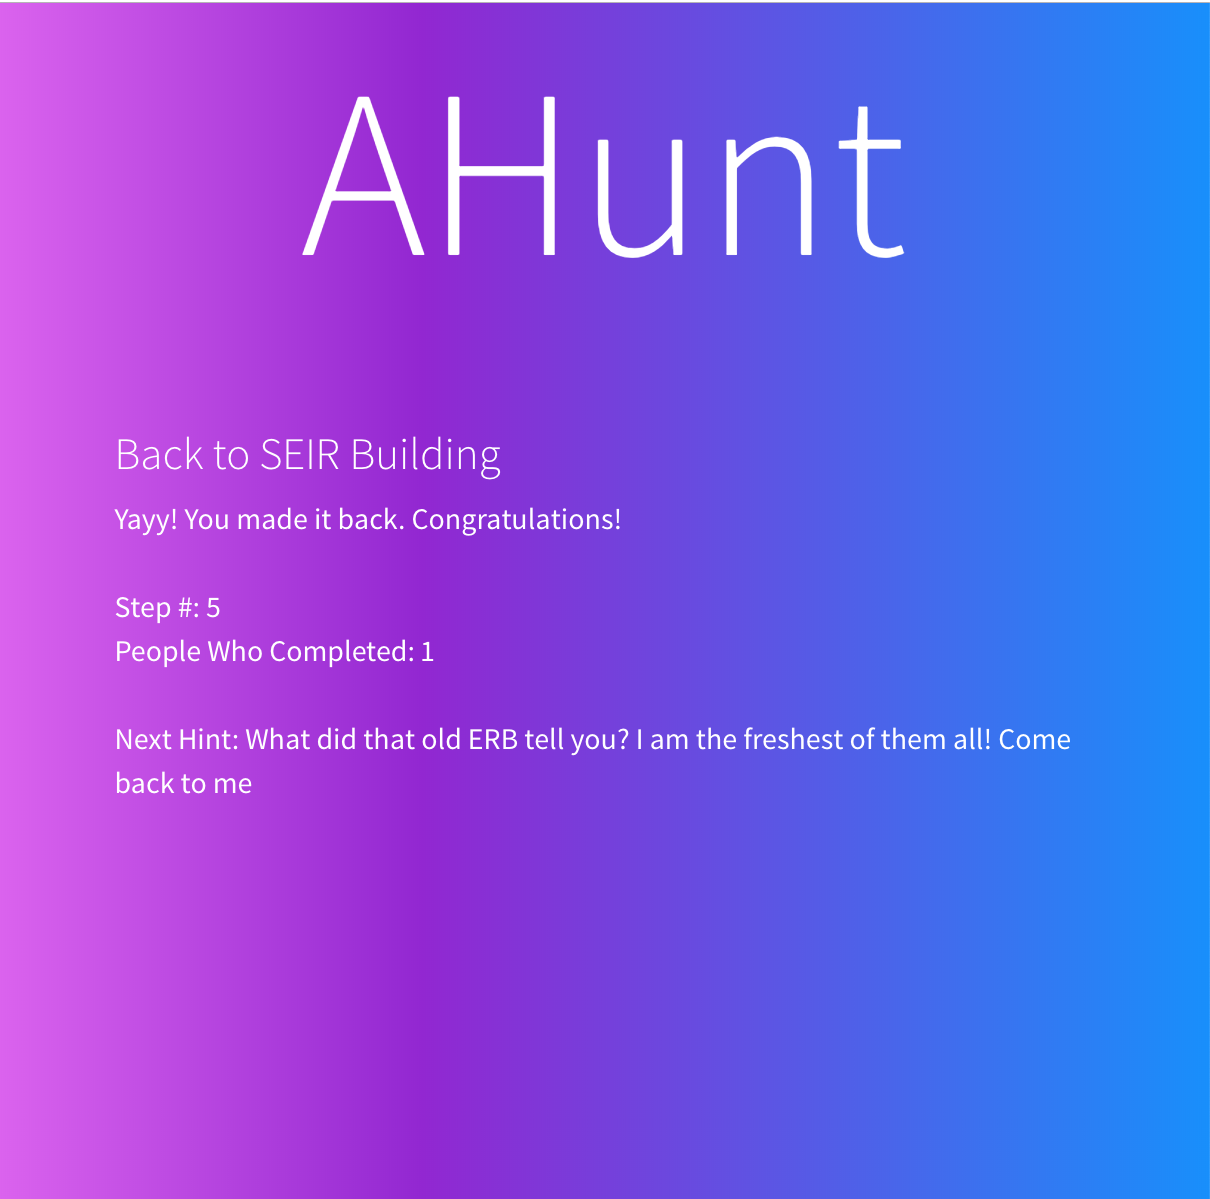 First ahunt slide